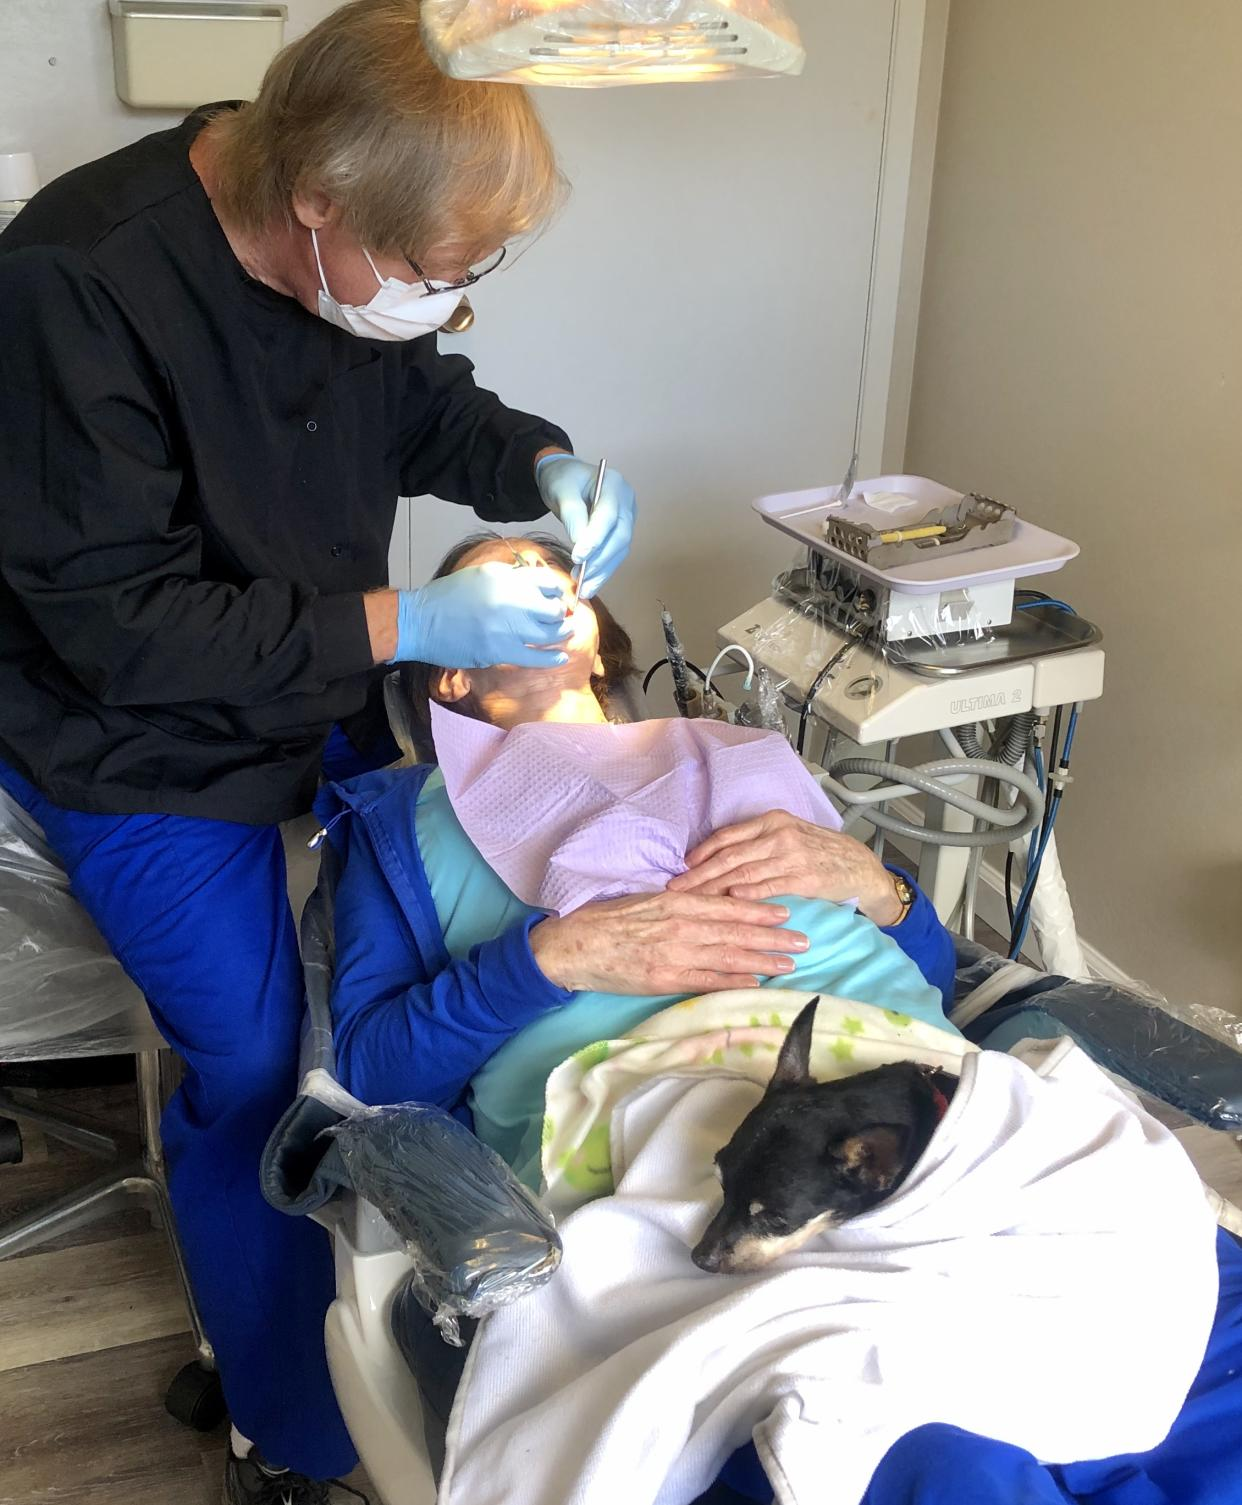 Kismet rests on a patient's lap during a dental exam.